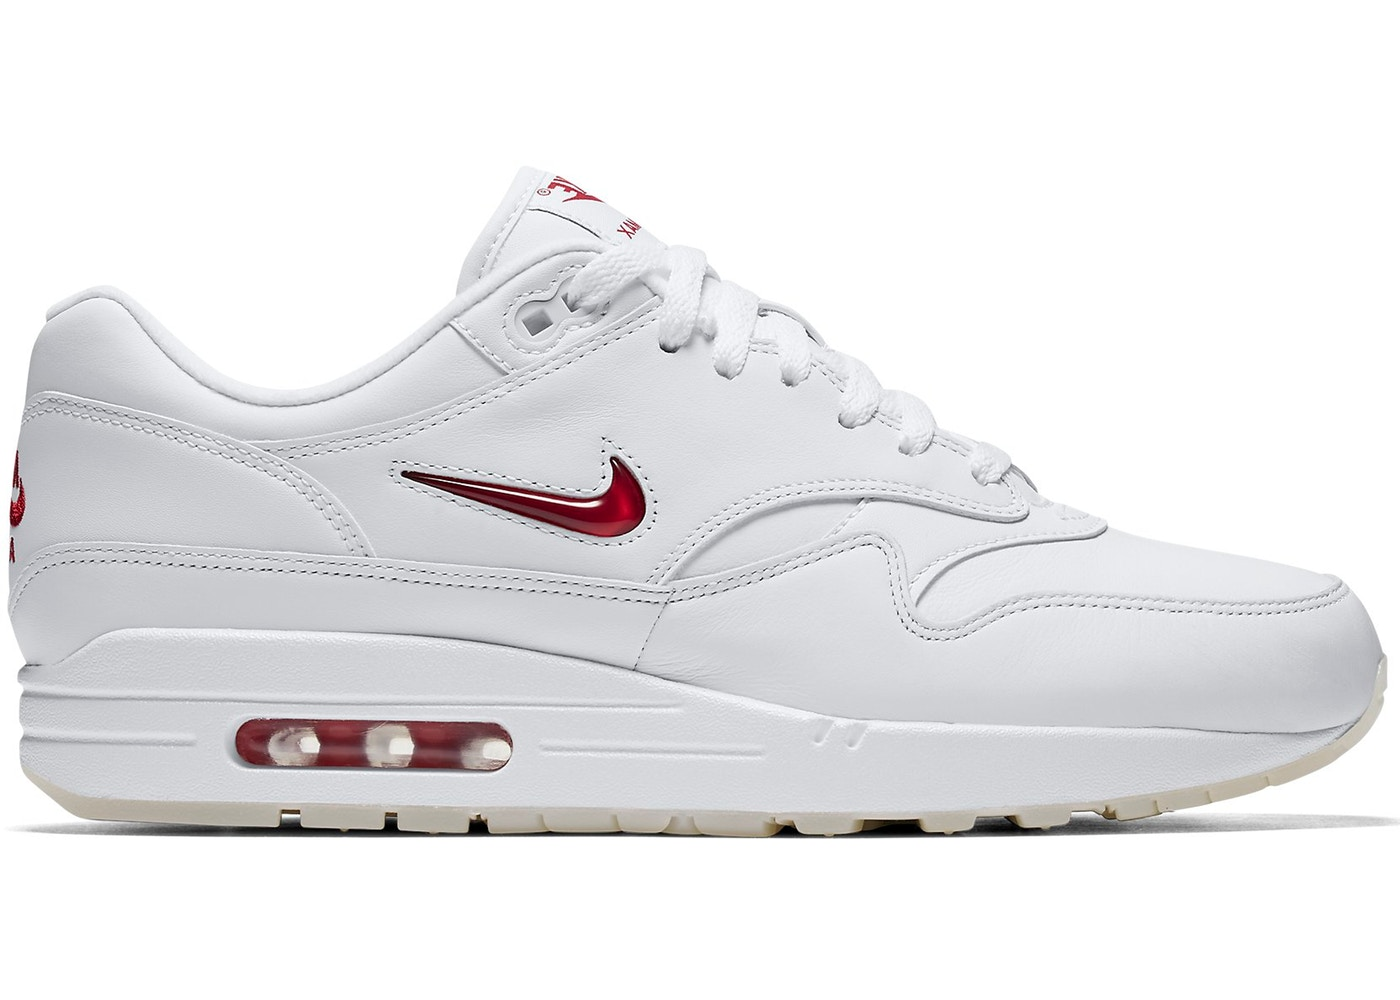 dentista lecho pozo  Nike Air Max 1 Jewel Rare Ruby - 918354-104